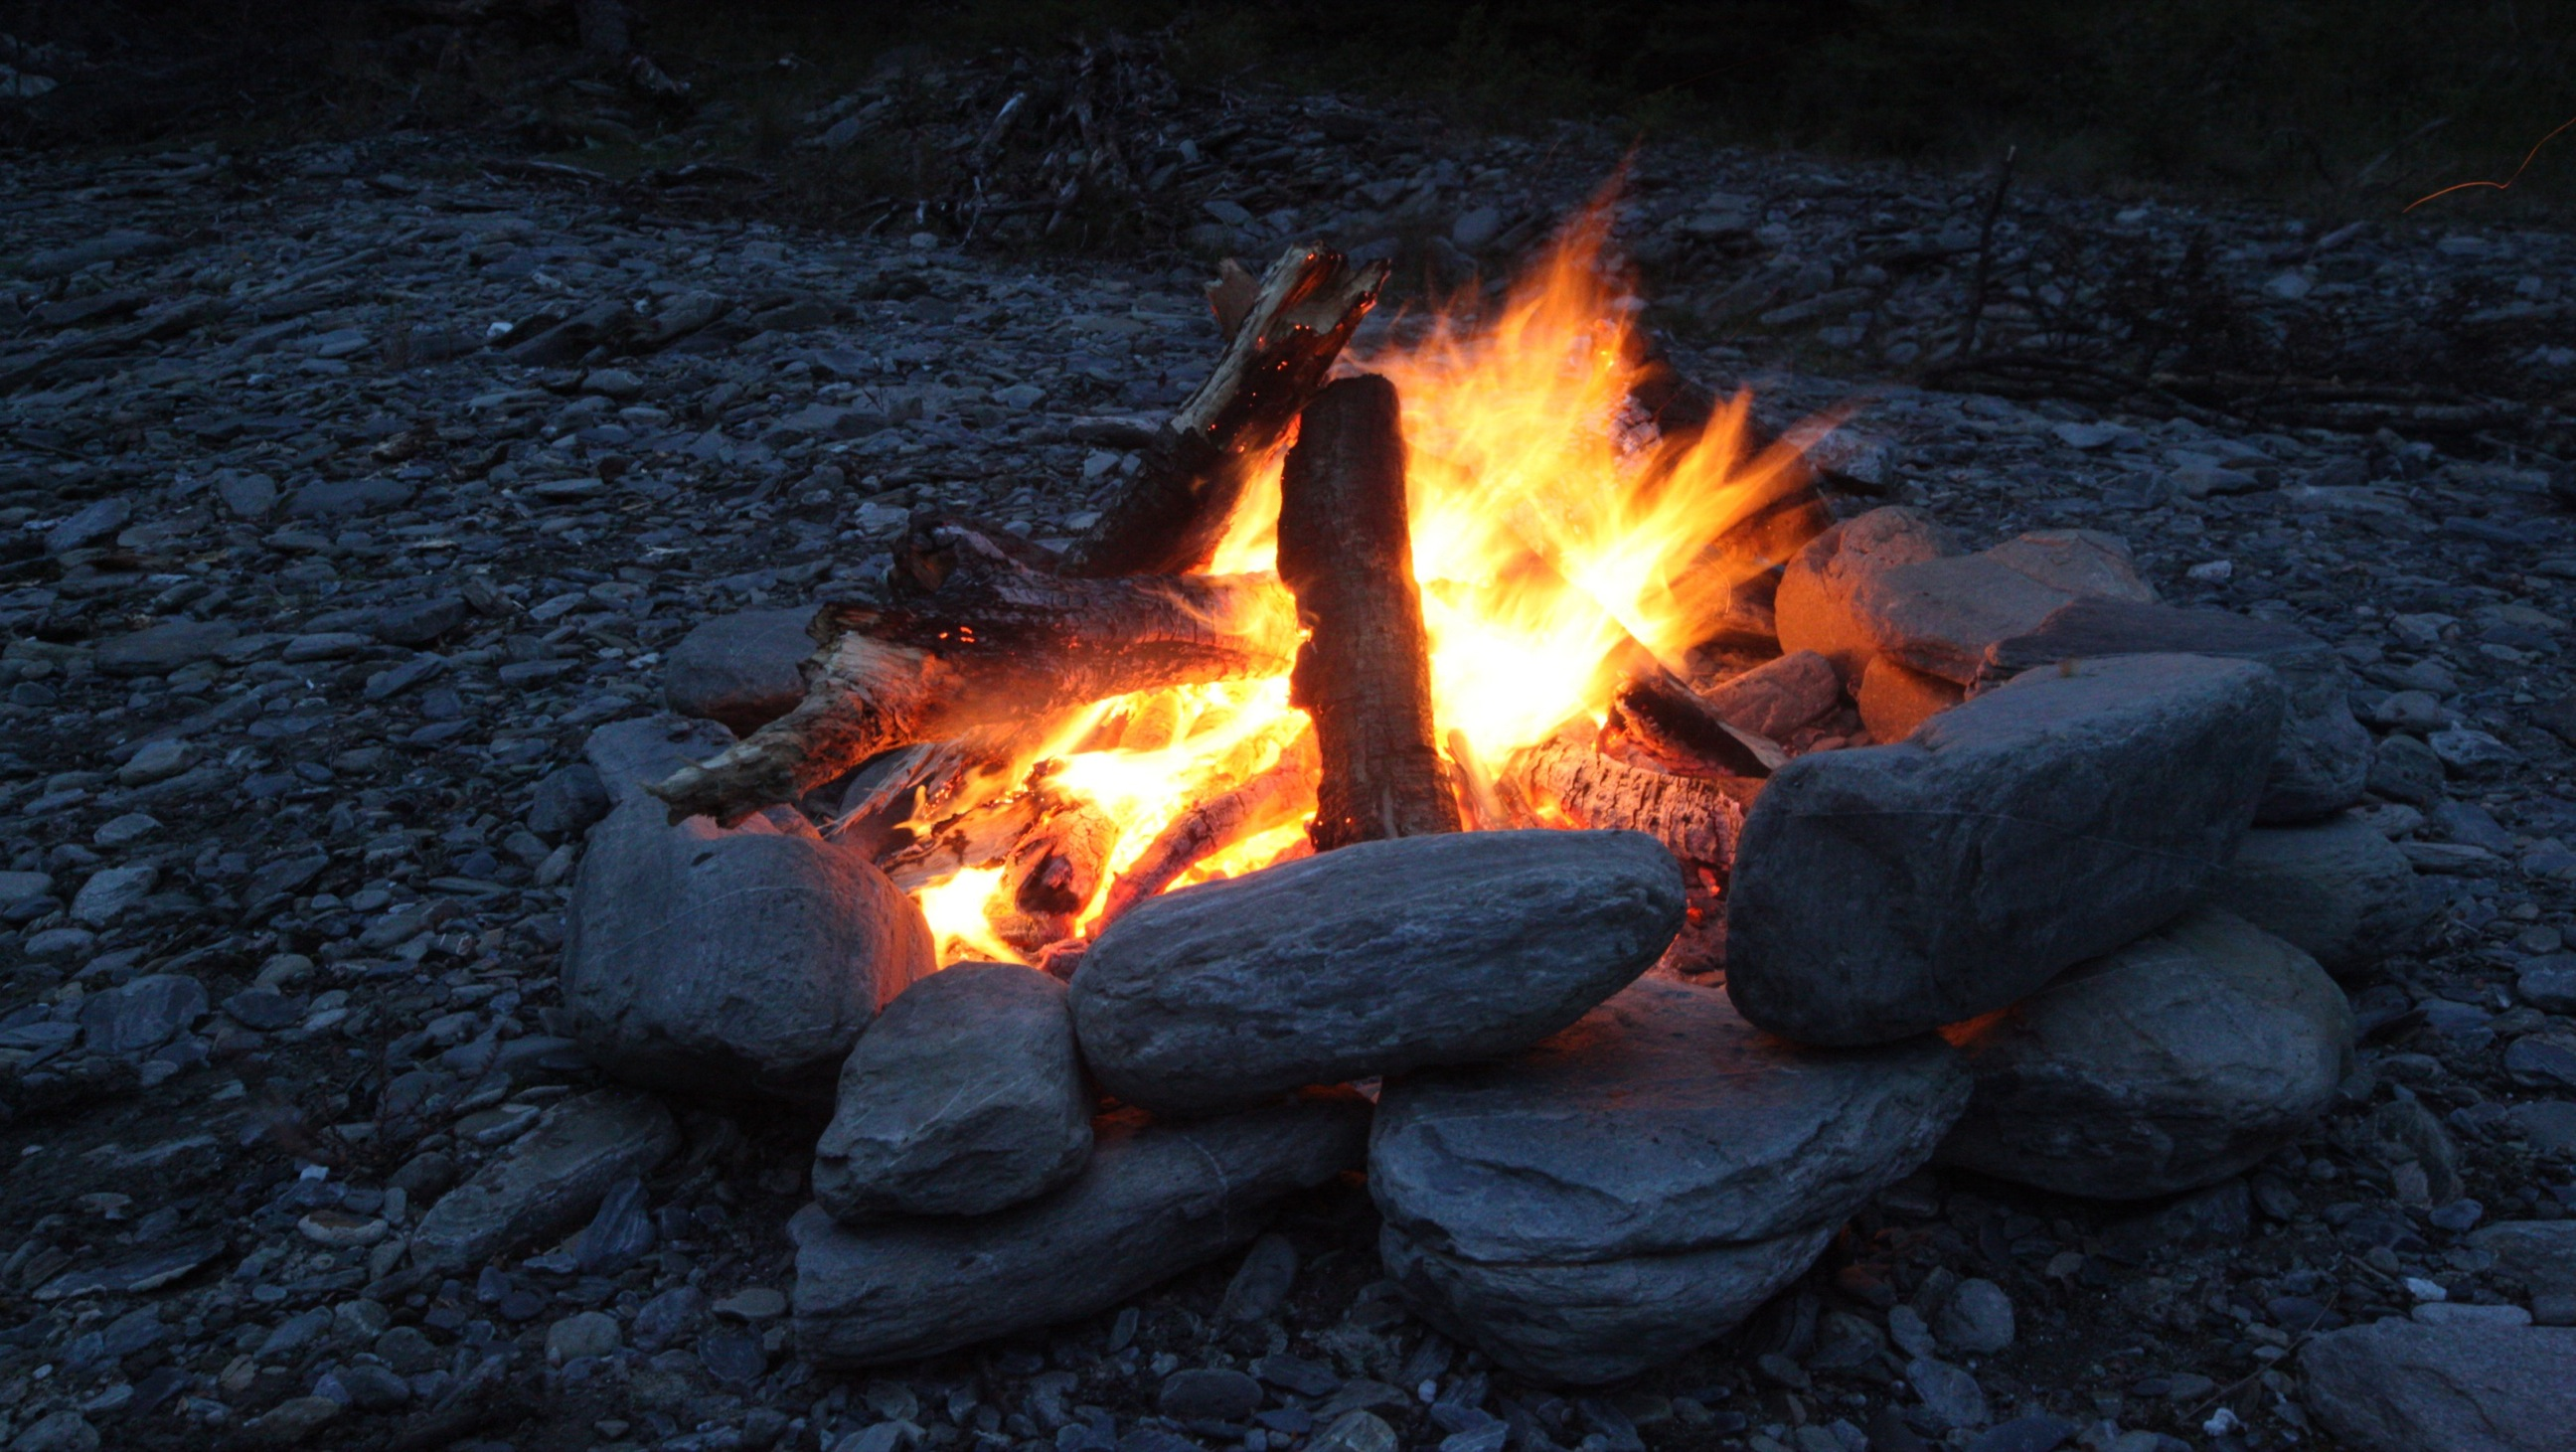 CampfireTimaruRiver-big.jpg